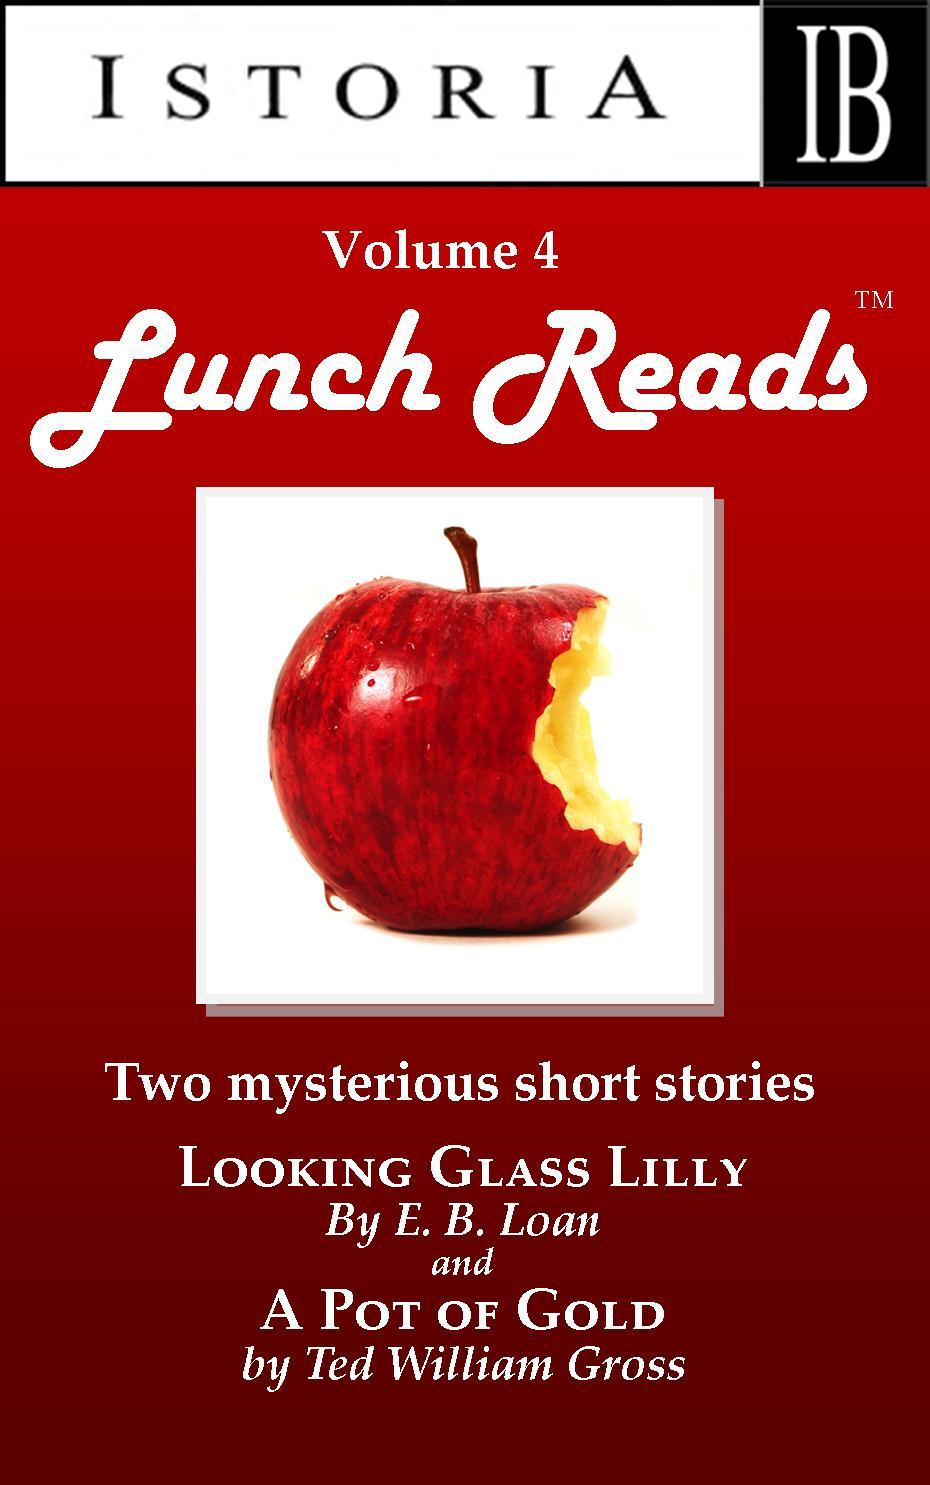 LUNCH READS Volume 4